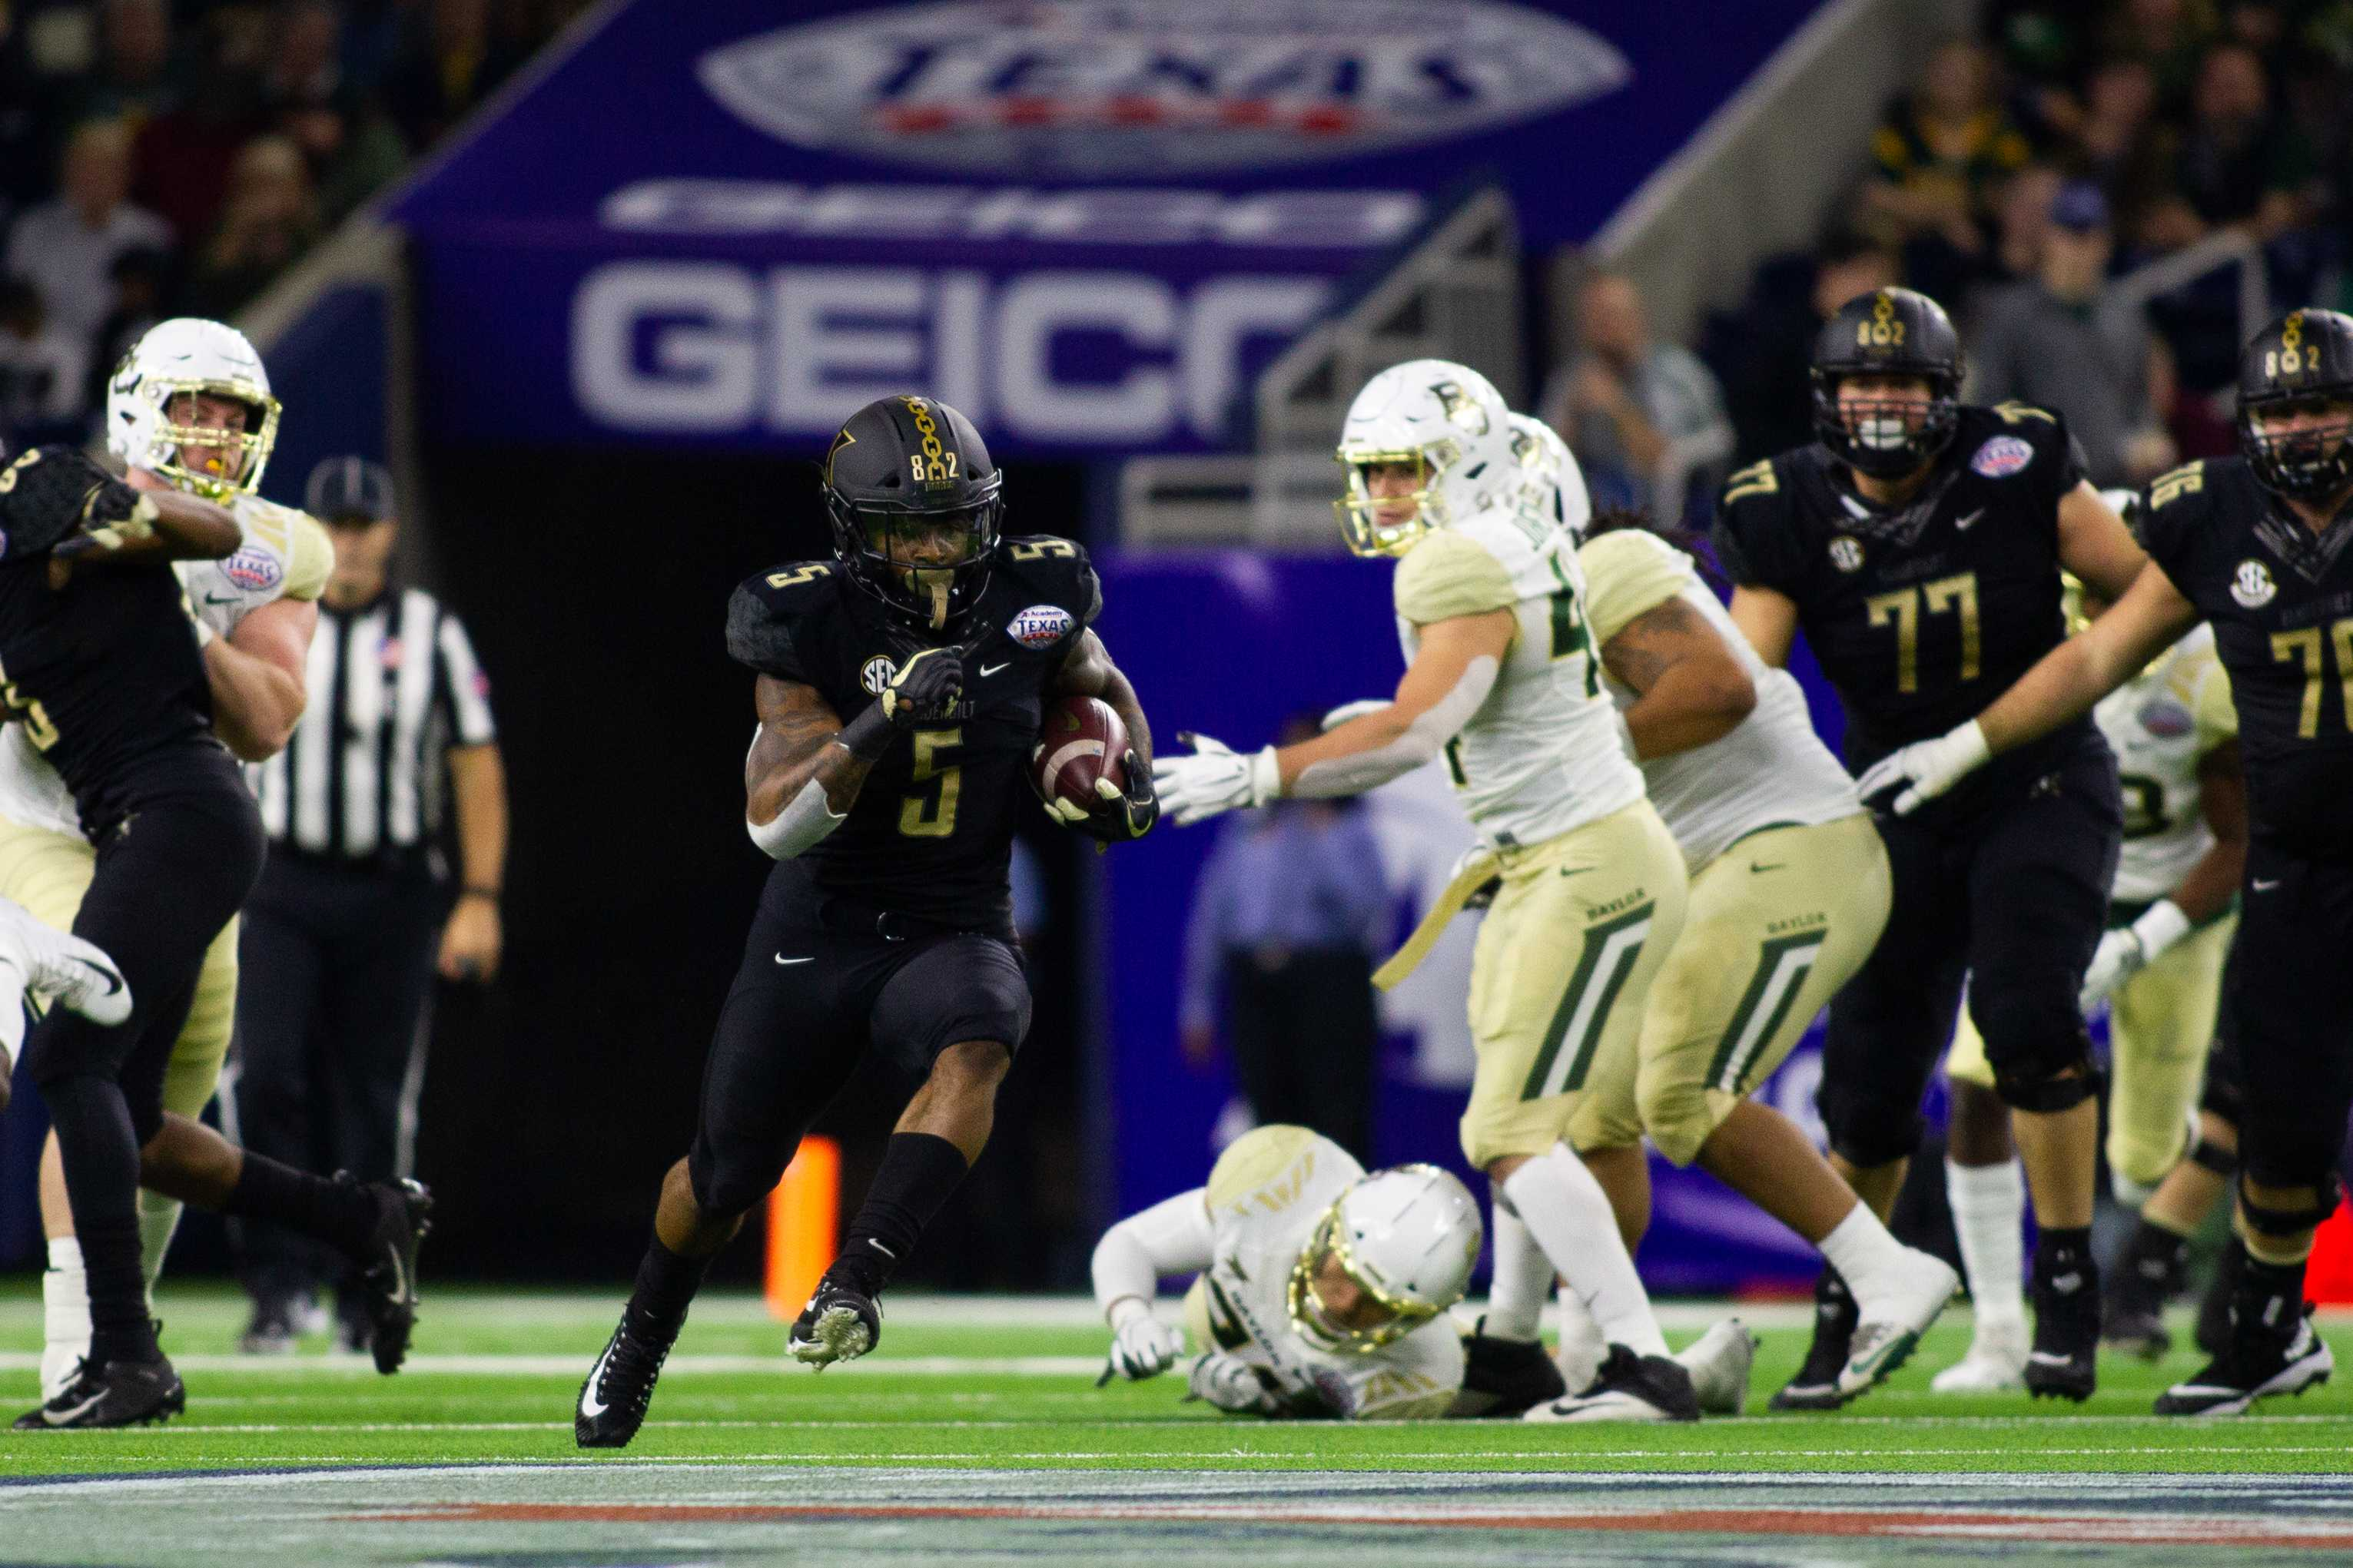 Vanderbilt falls to Baylor in Texas Bowl shootout